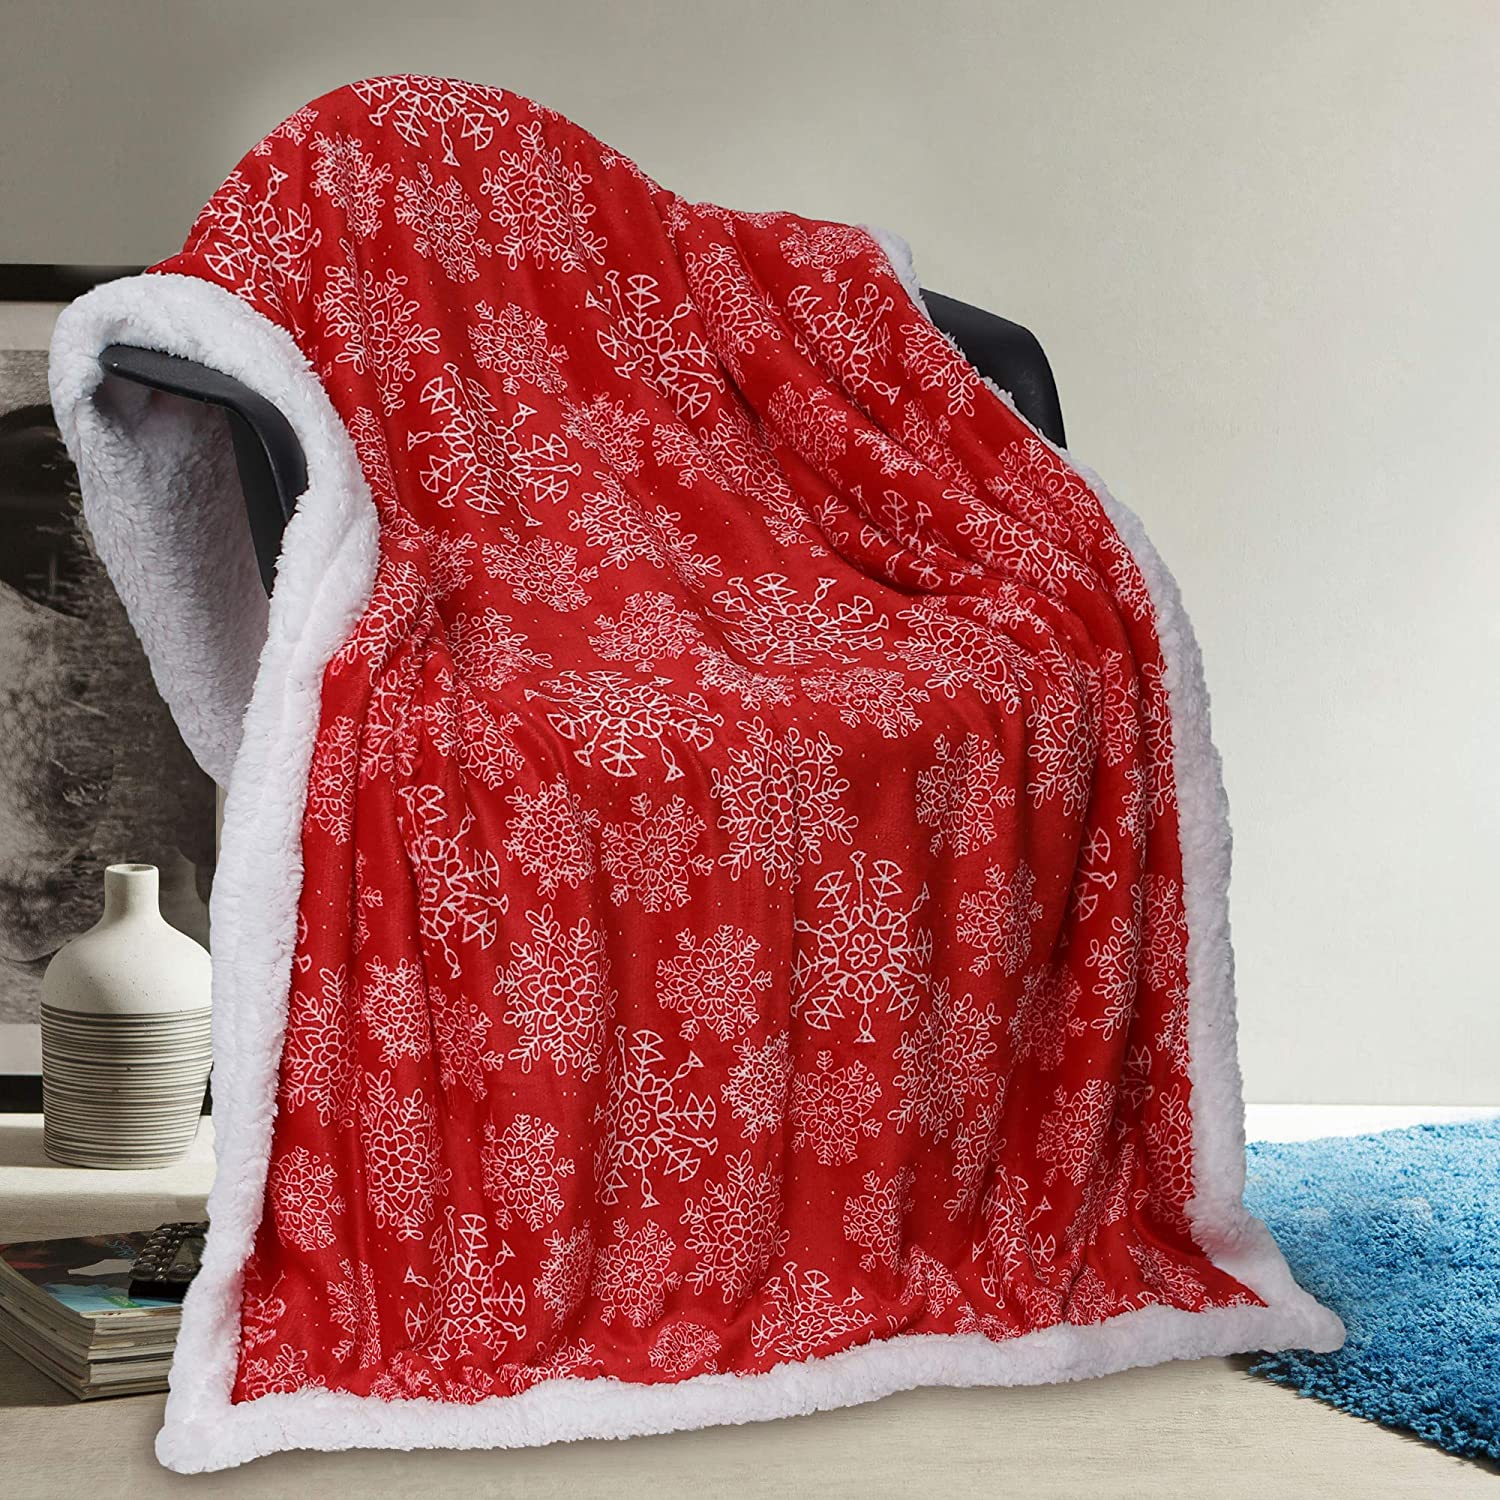 50 x 60 Red Vera Neumann Iclyn Ulta Plush Soft /& Warm Sherpa Throw Blanket